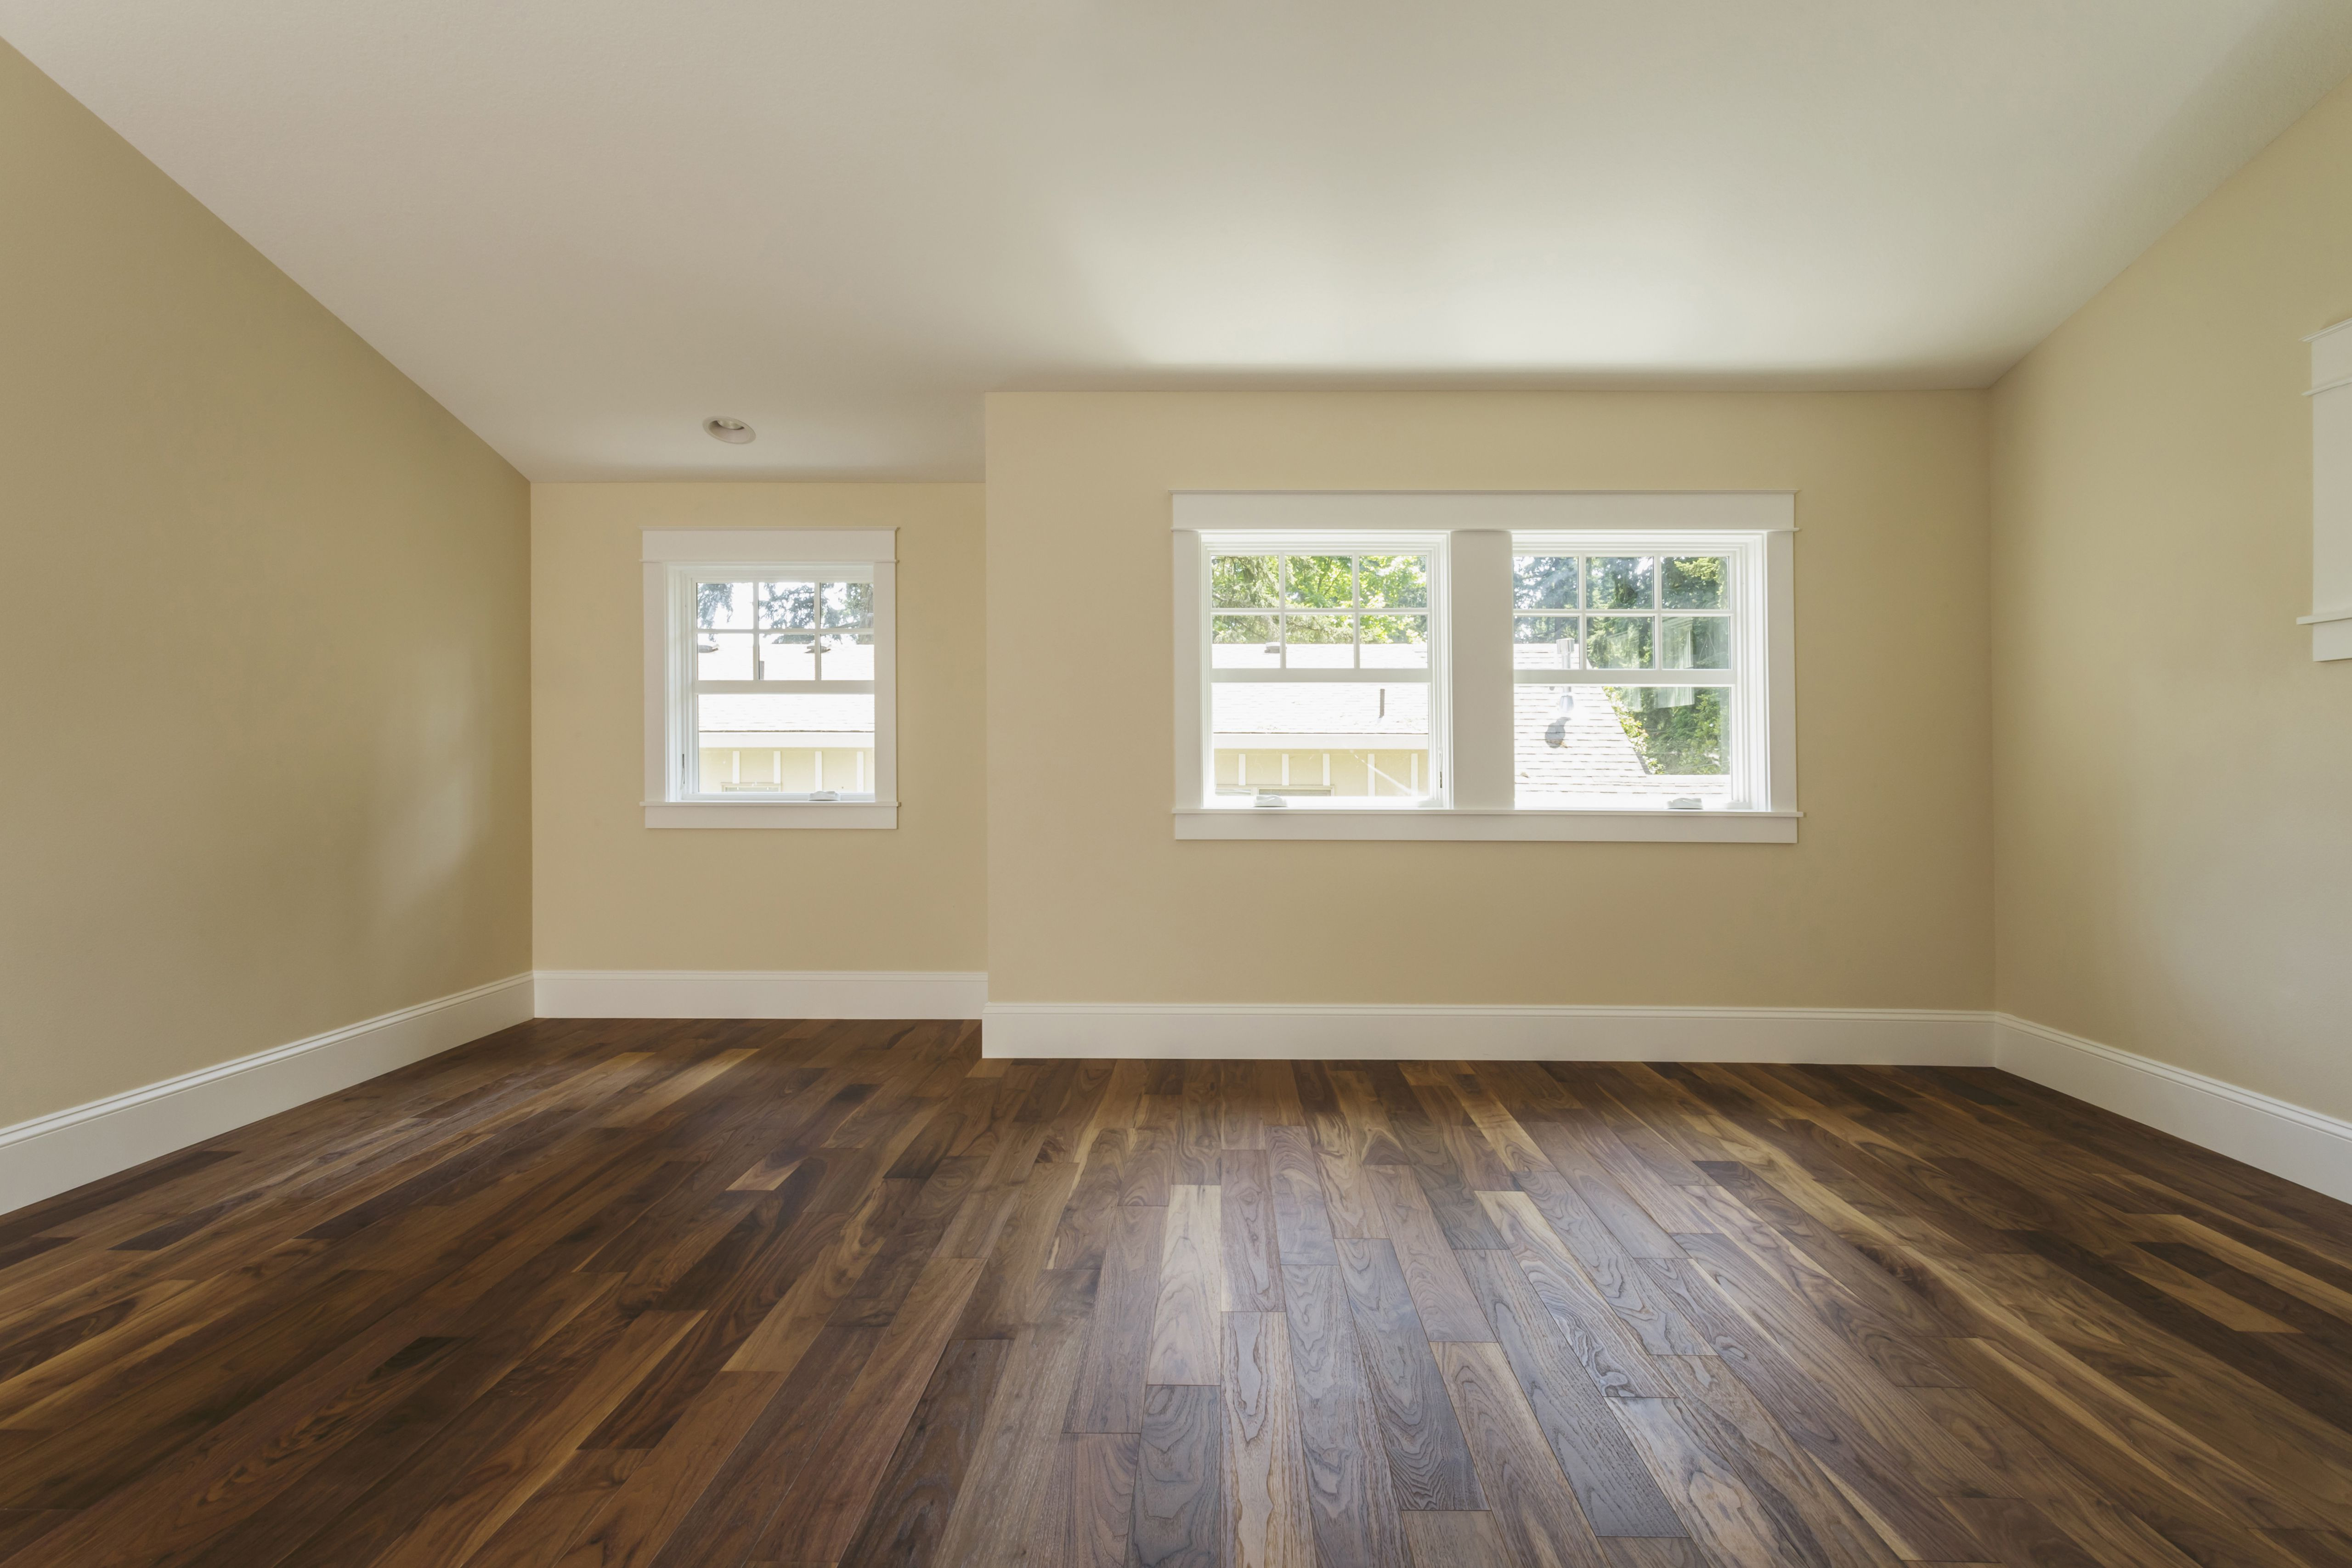 hardwood floor installation time of its easy and fast to install plank vinyl flooring with wooden floor in empty bedroom 482143001 588bd5f45f9b5874eebd56e9